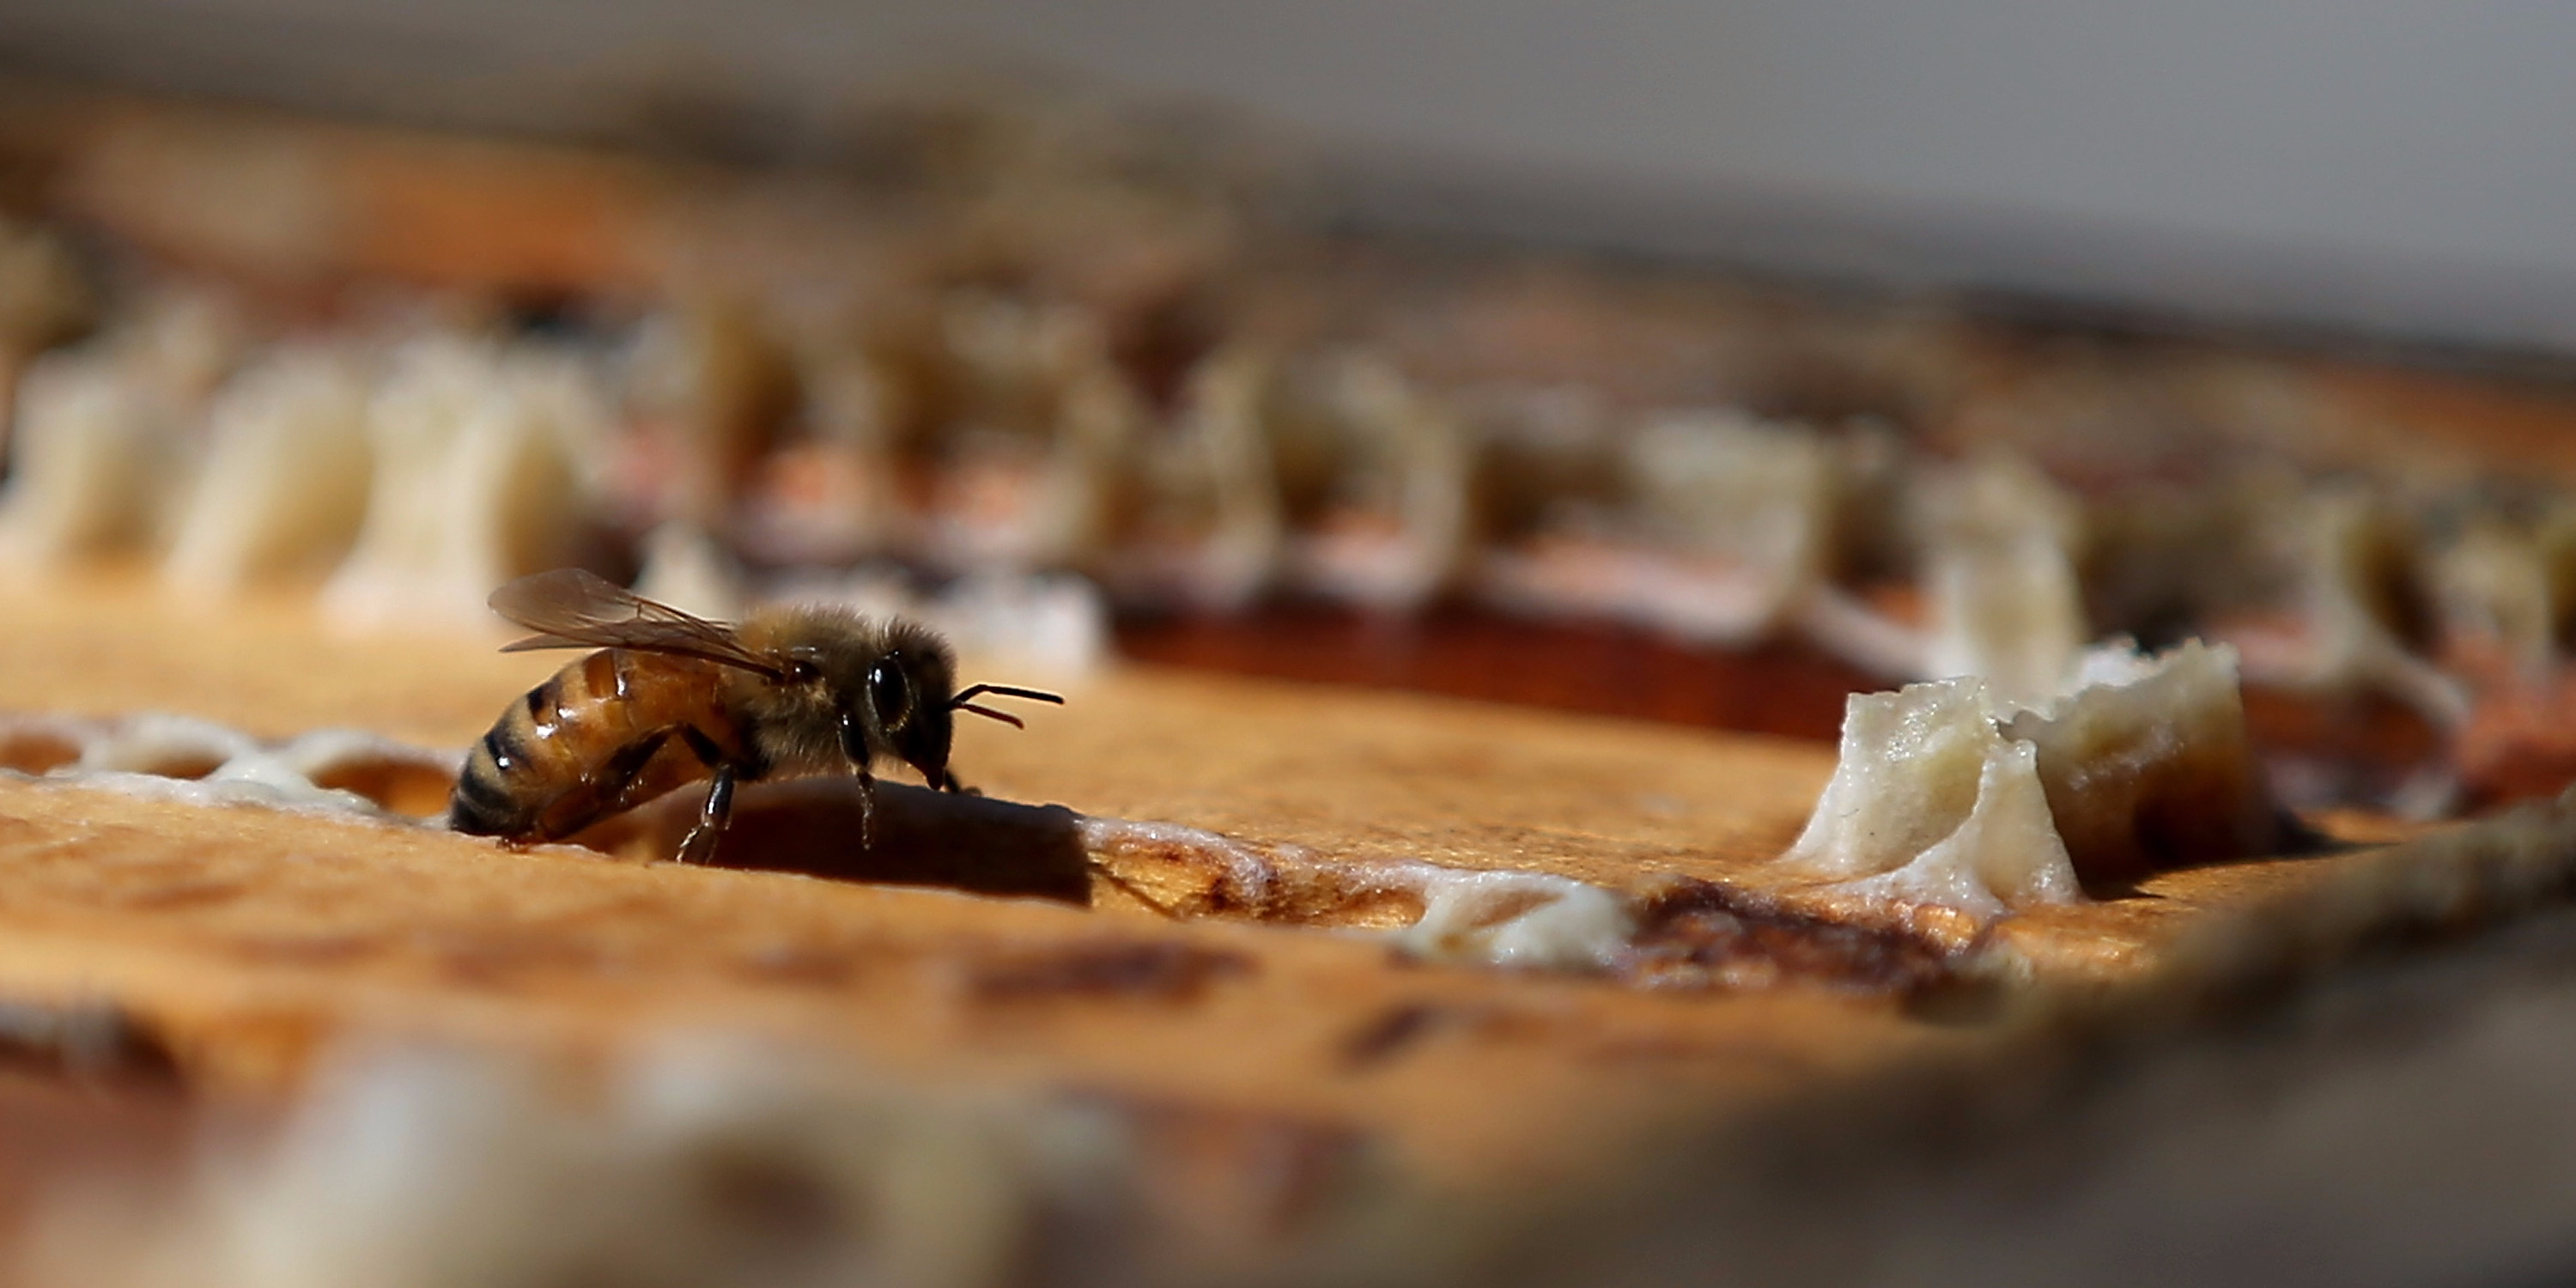 the disappearance of bees and its affect on the future of humans Colony collapse disorder  although the shifting weather conditions themselves negatively affect bees,  examines the relationship between humans and bees and.